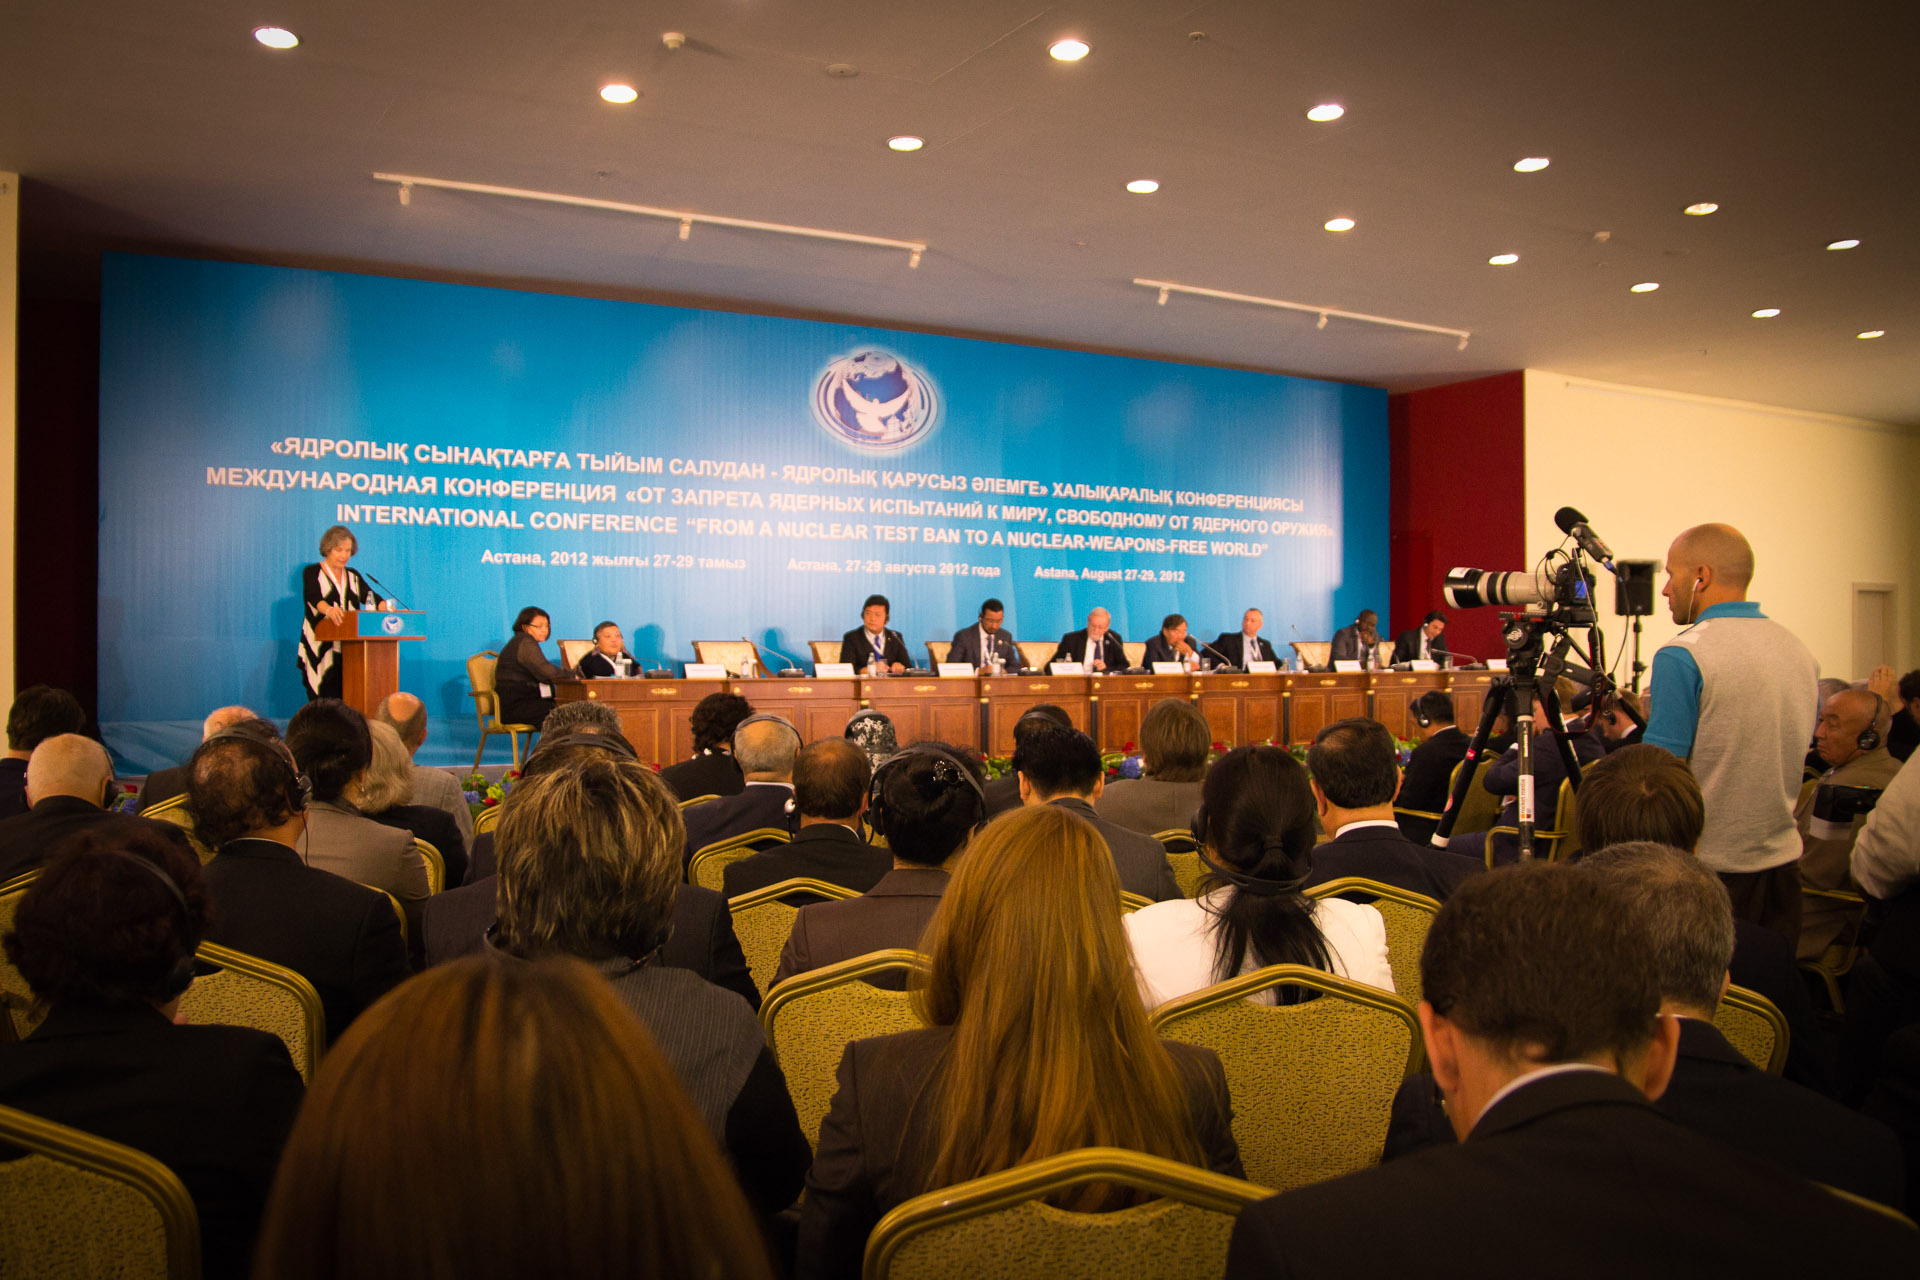 Panel 1: Comprehensive Test Ban Treaty – a Building block for a nuclear-weapons-free world